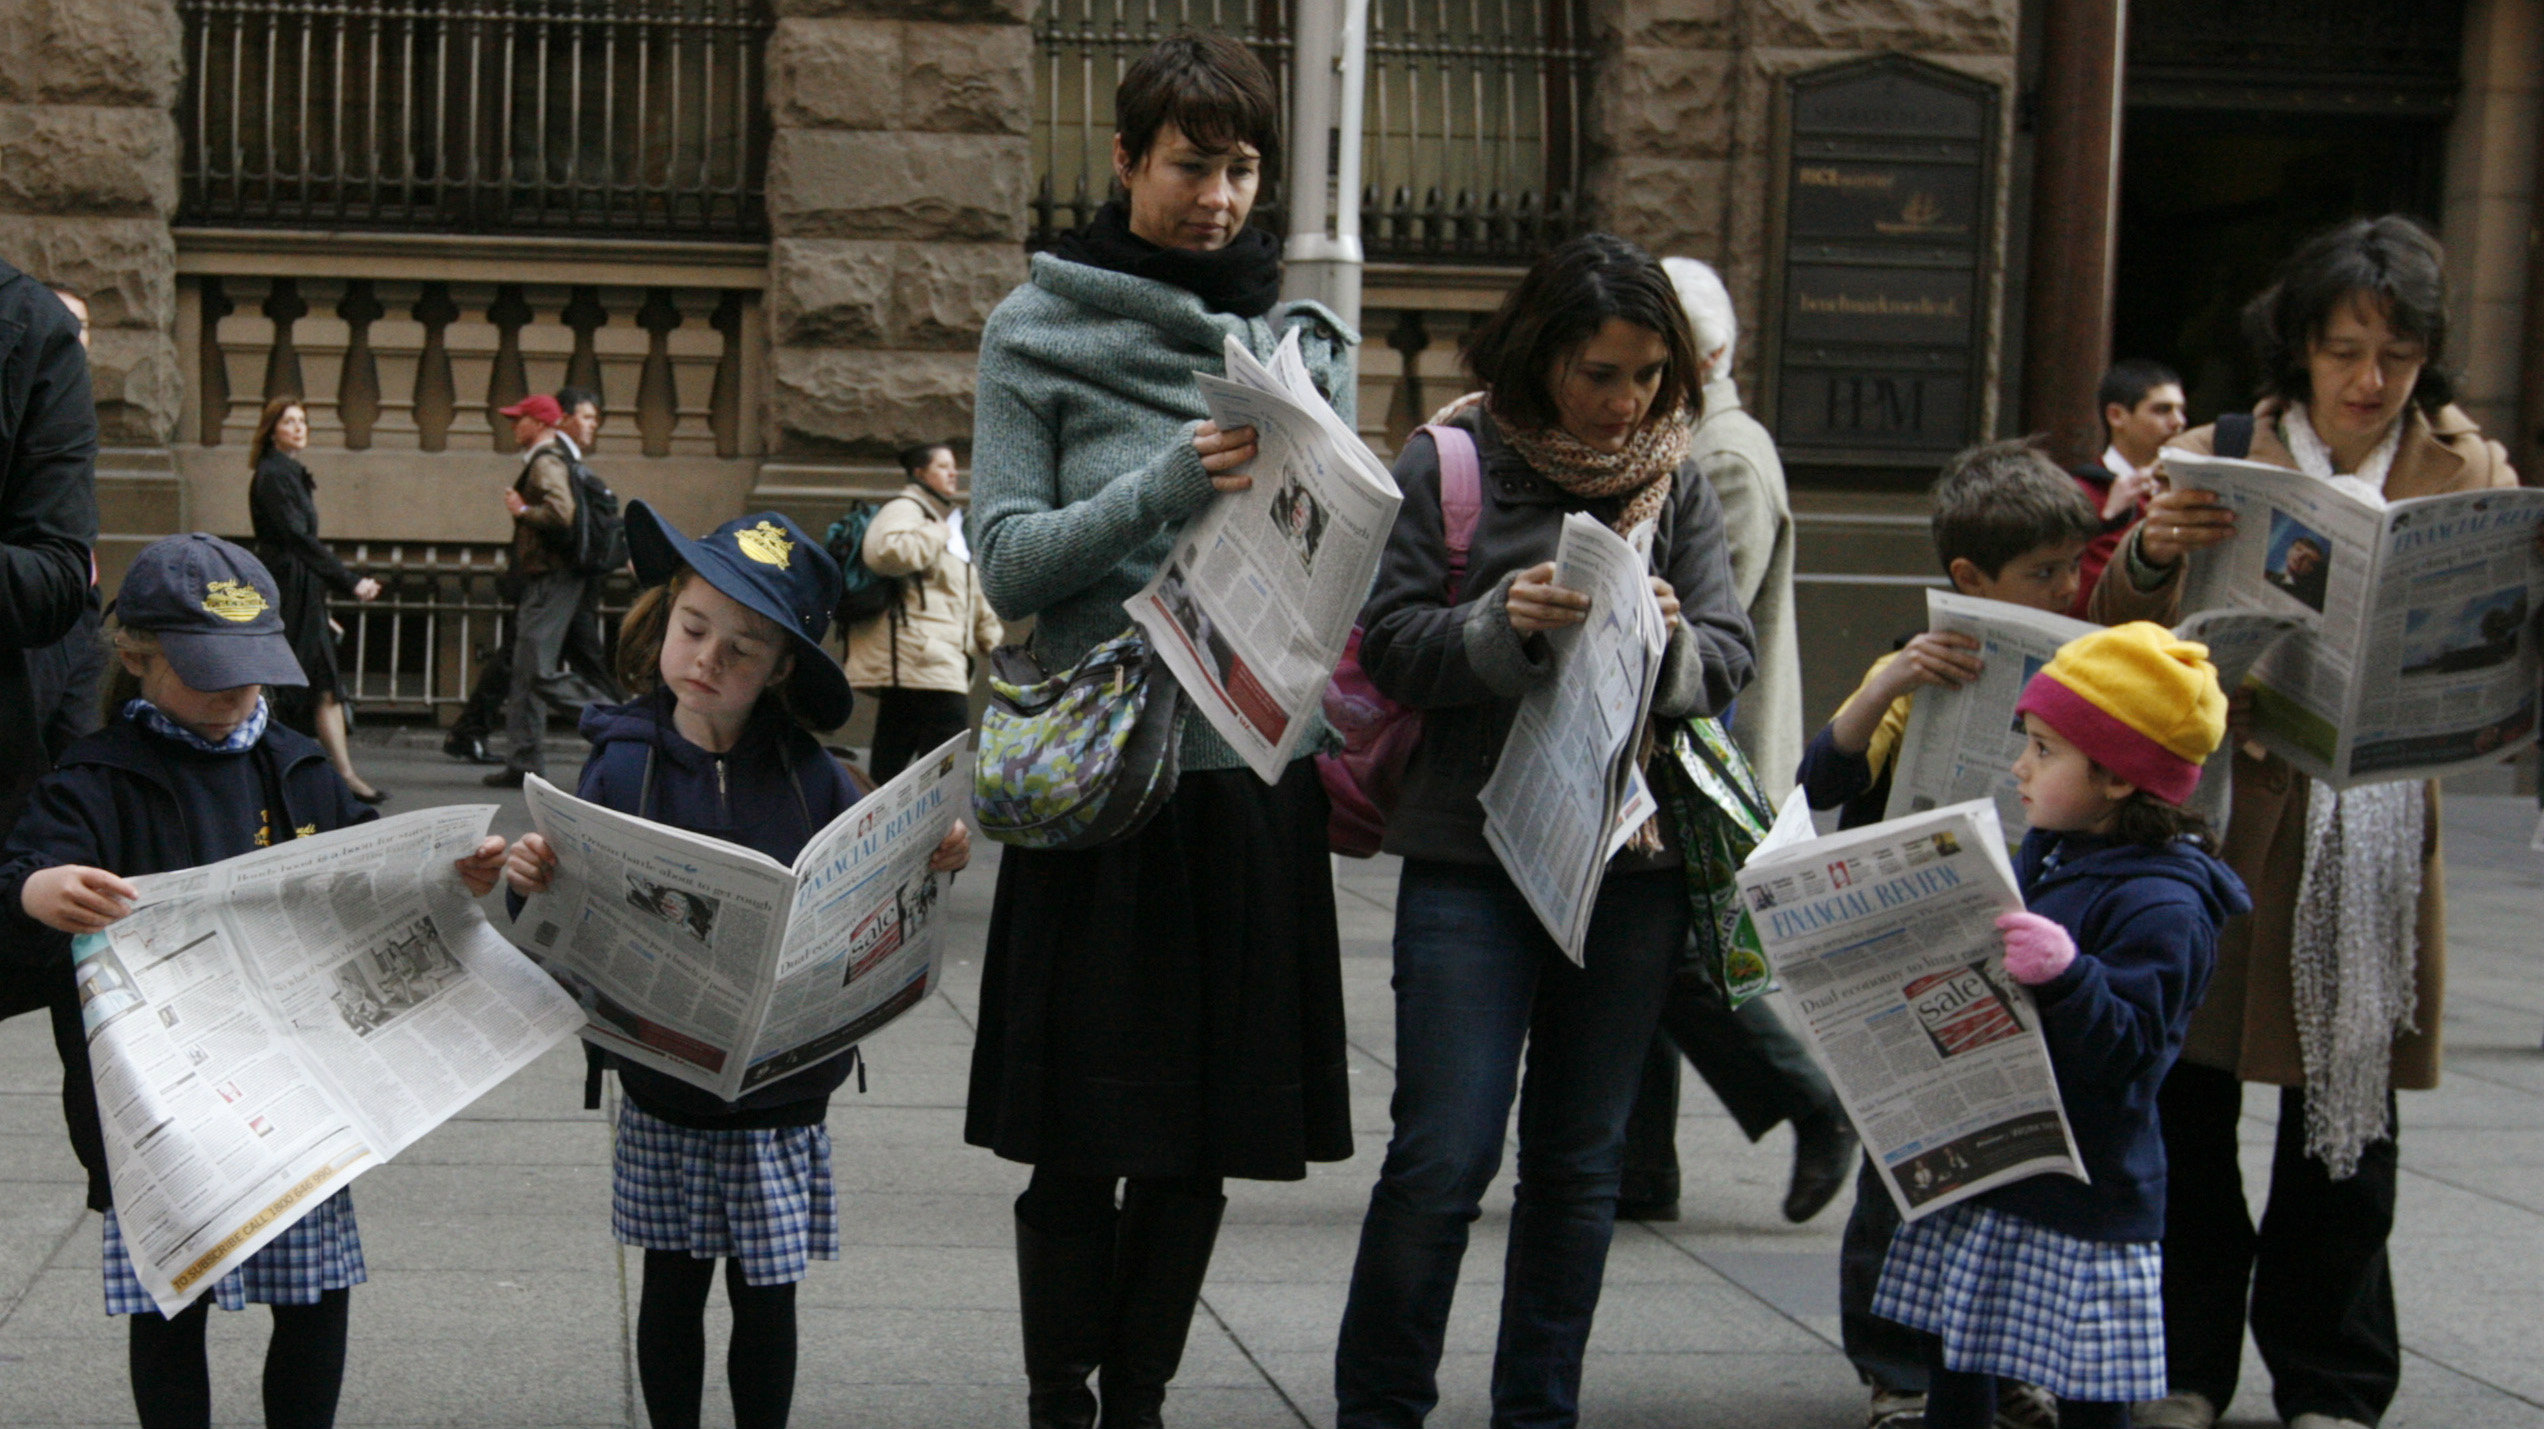 Children, mimicking the actions of their paired adult, read a newspaper at Martin Place in Central Sydney